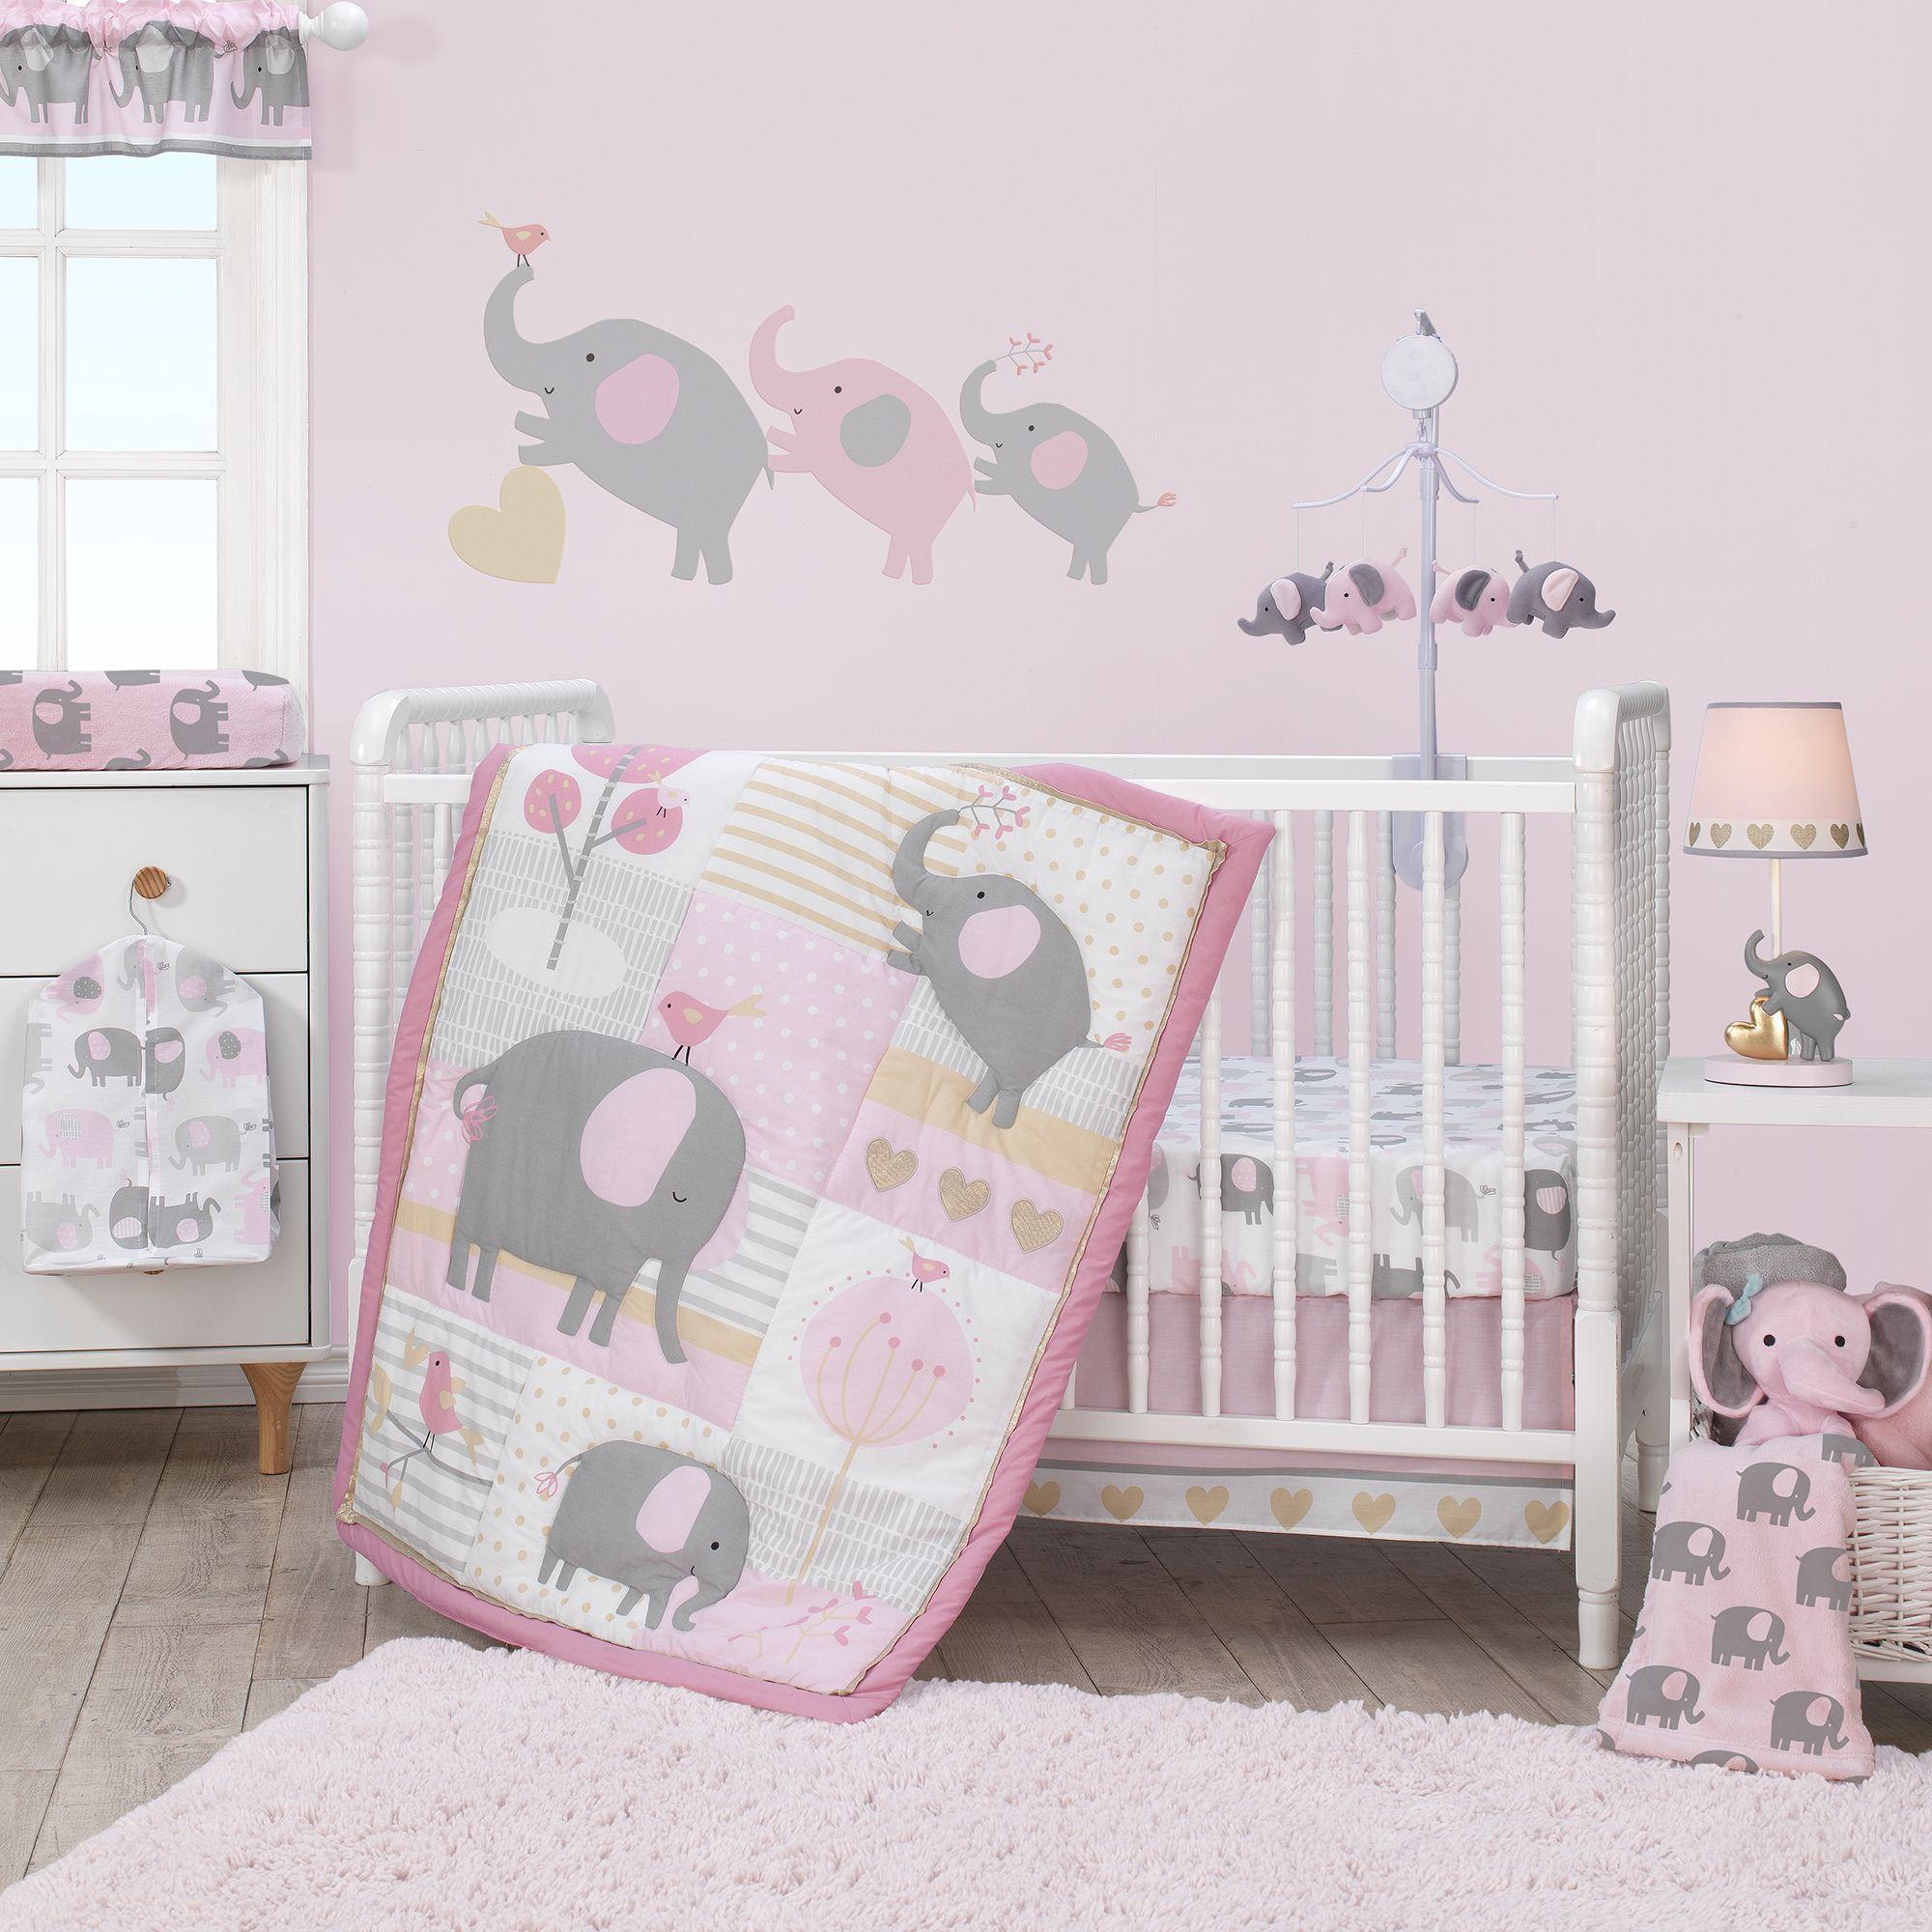 Lambs /& Ivy Boho Elephant White//Pink//Gray Baby Fitted Toddler//Crib Sheet